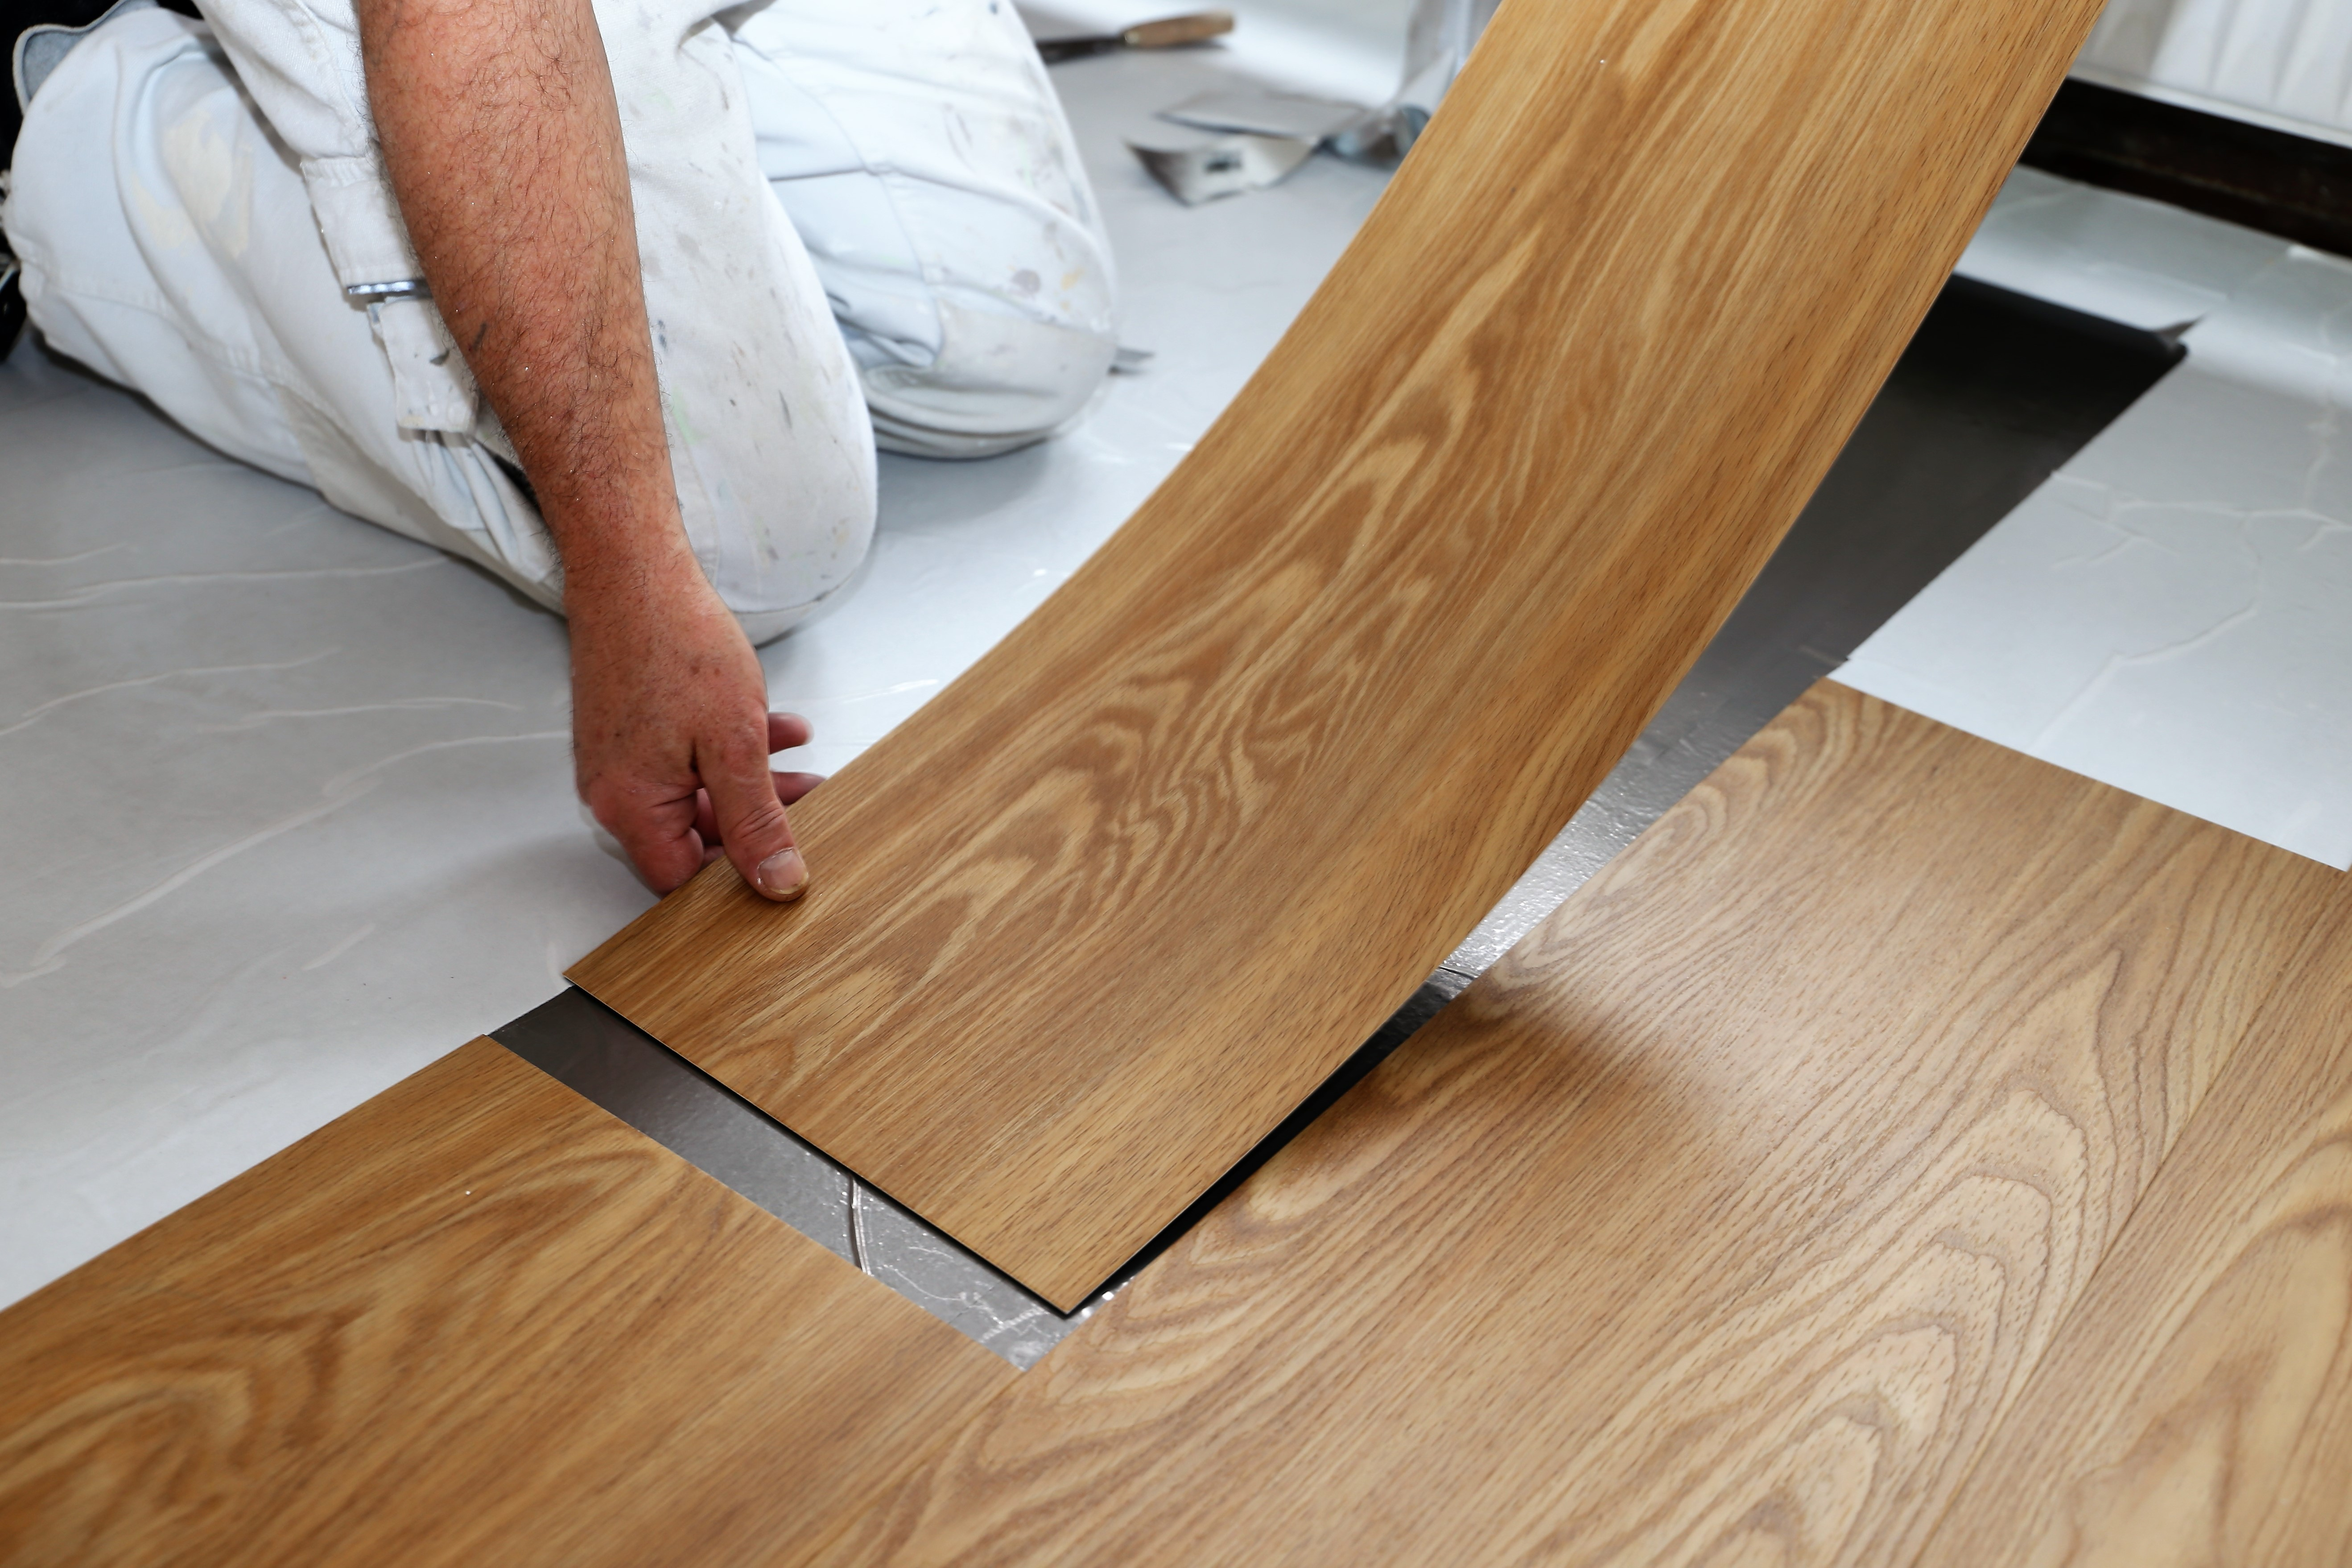 Lowestoft Carpet Fitters & Flooring